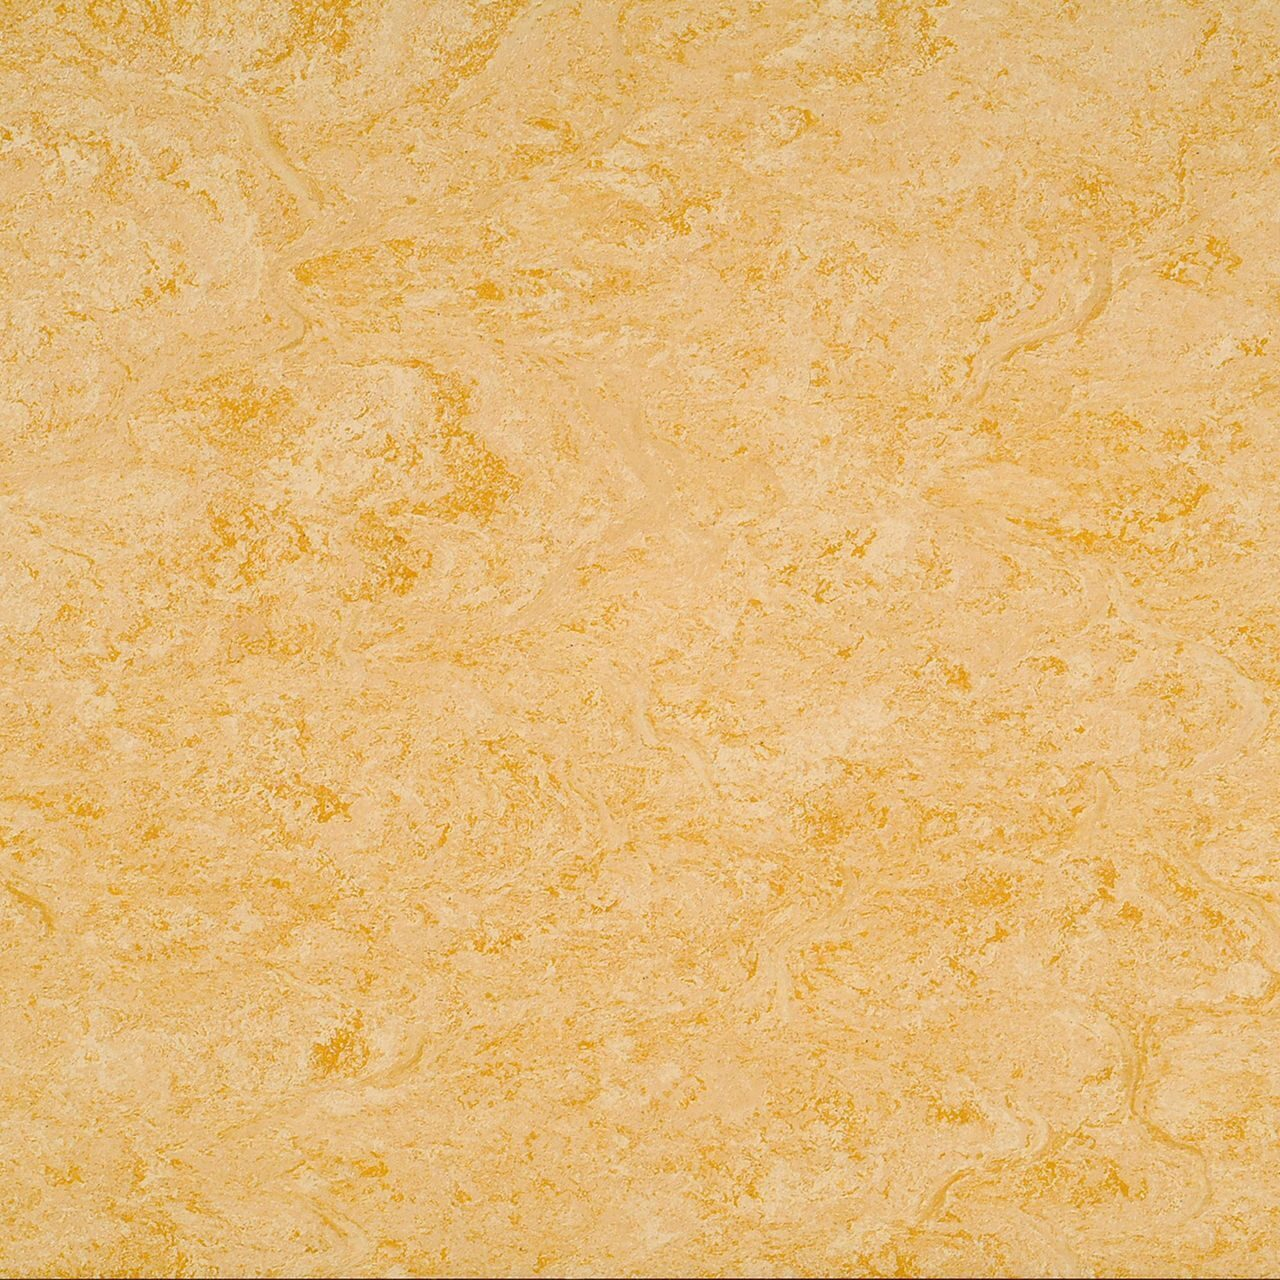 Marmorette 121-076 pale yellow